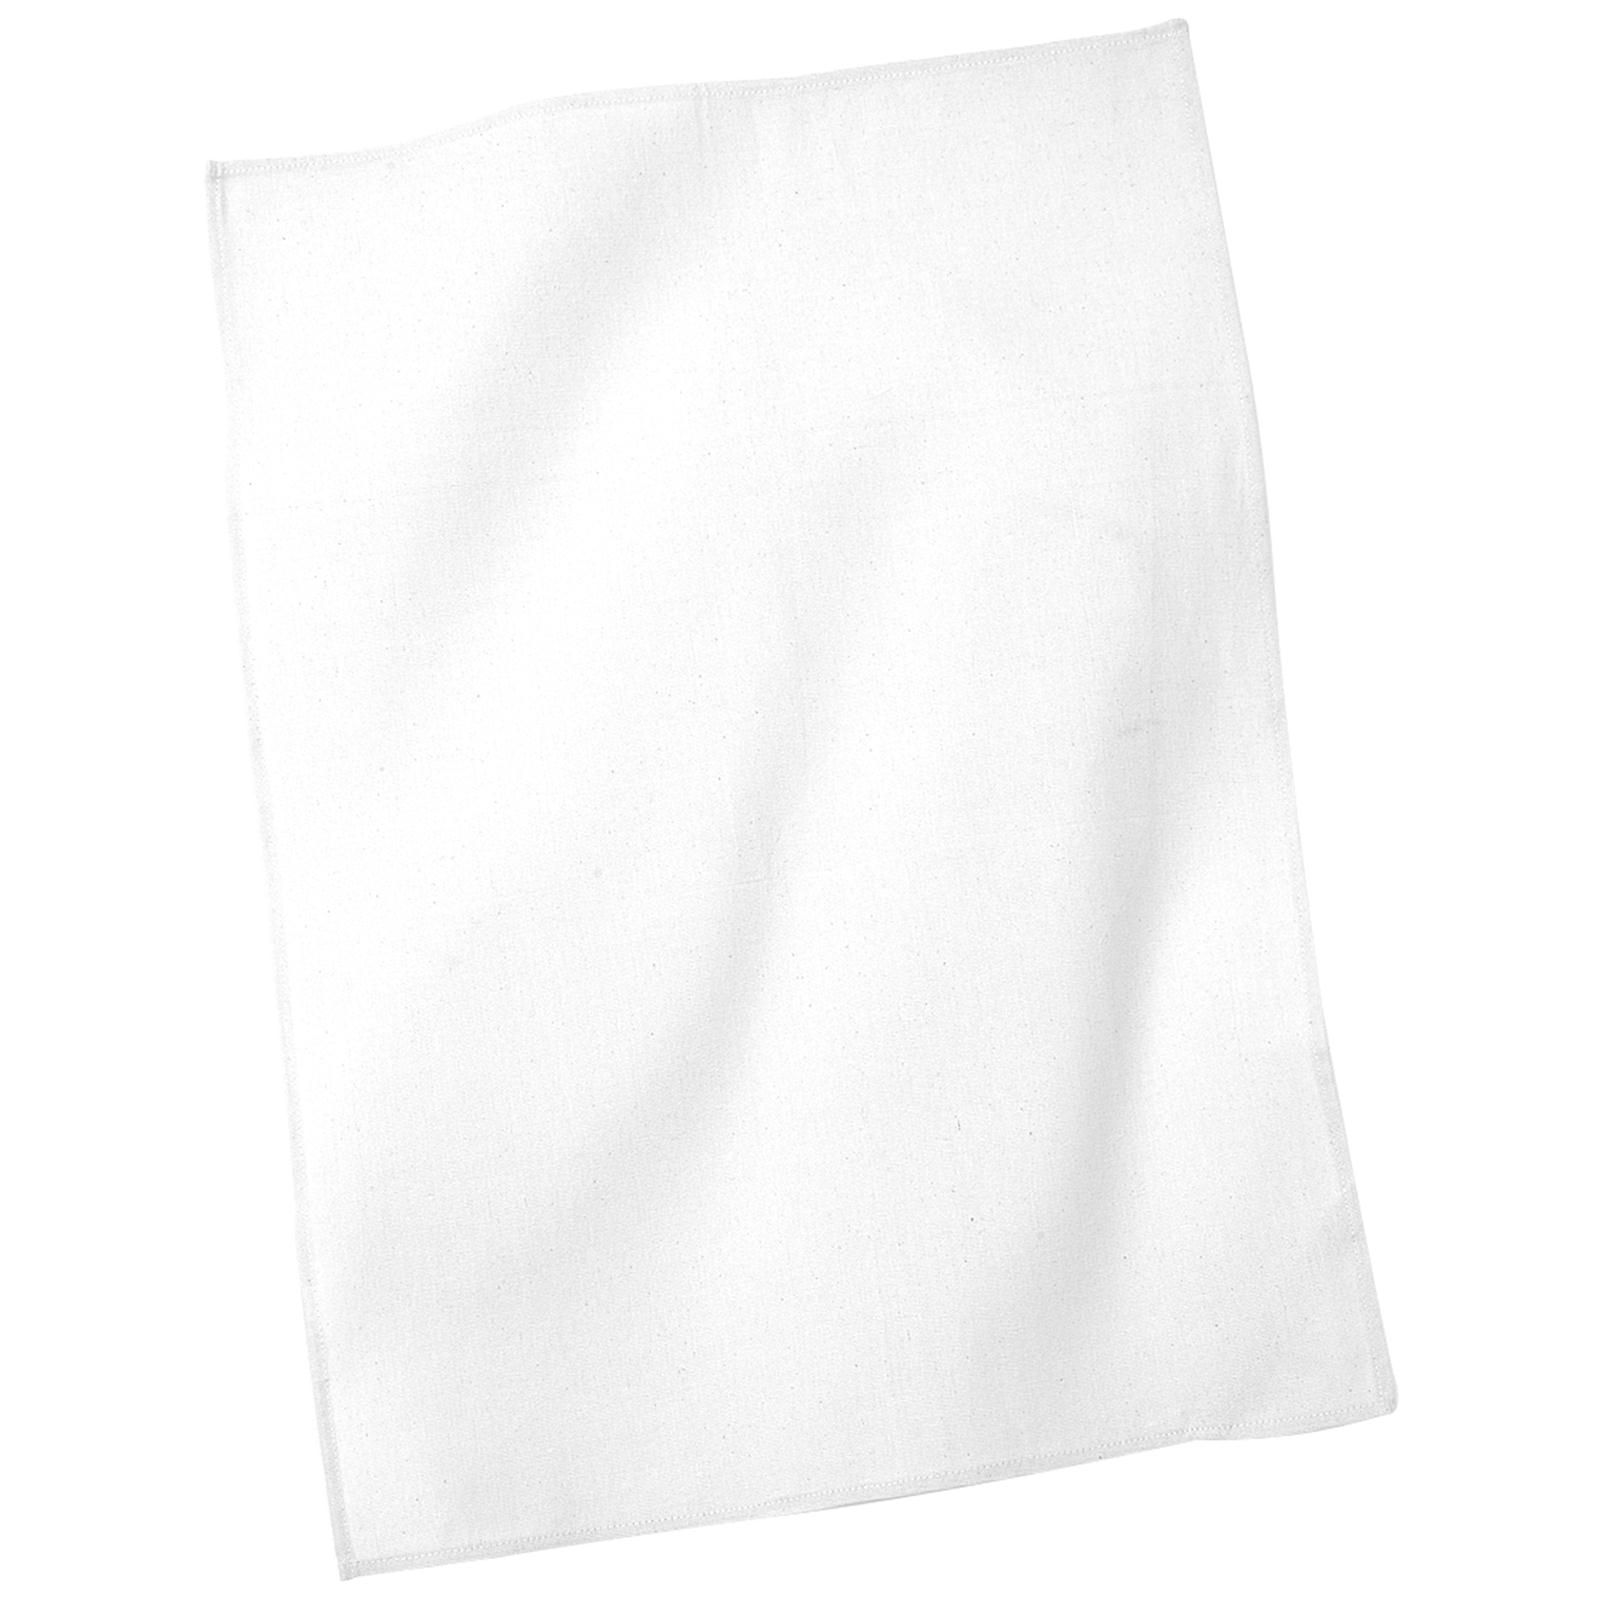 White Kitchen Towel: New WESTFORD MILL Cotton Tea Towel In Natural White 50x70